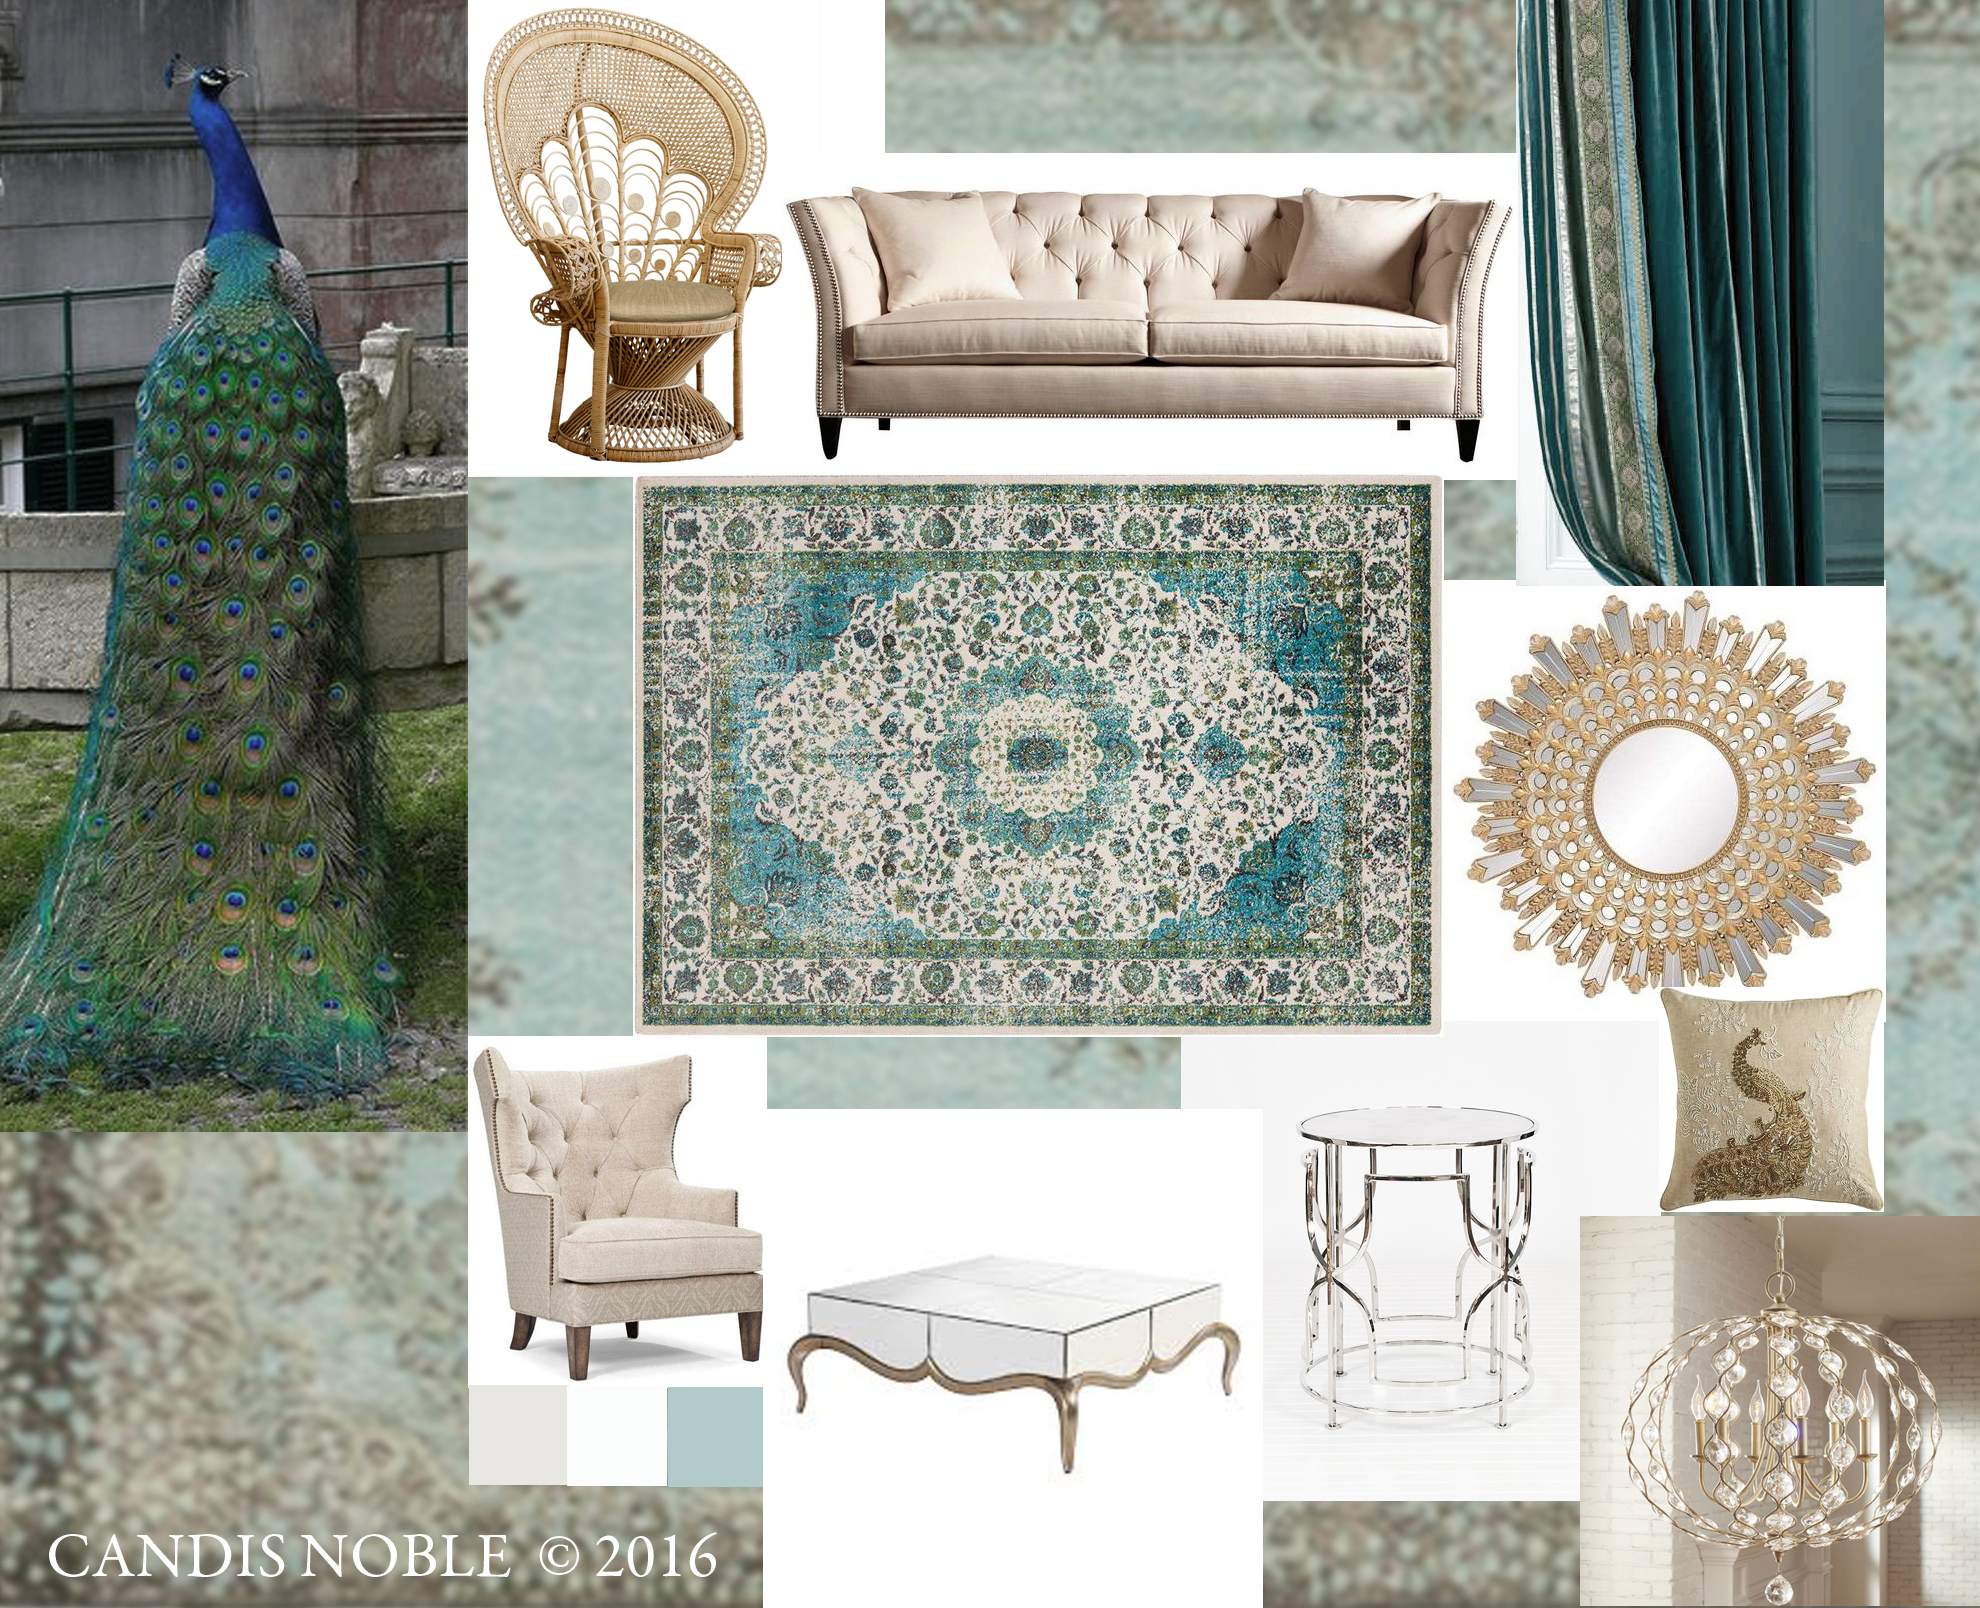 A Feathered Inspiration Evening Room